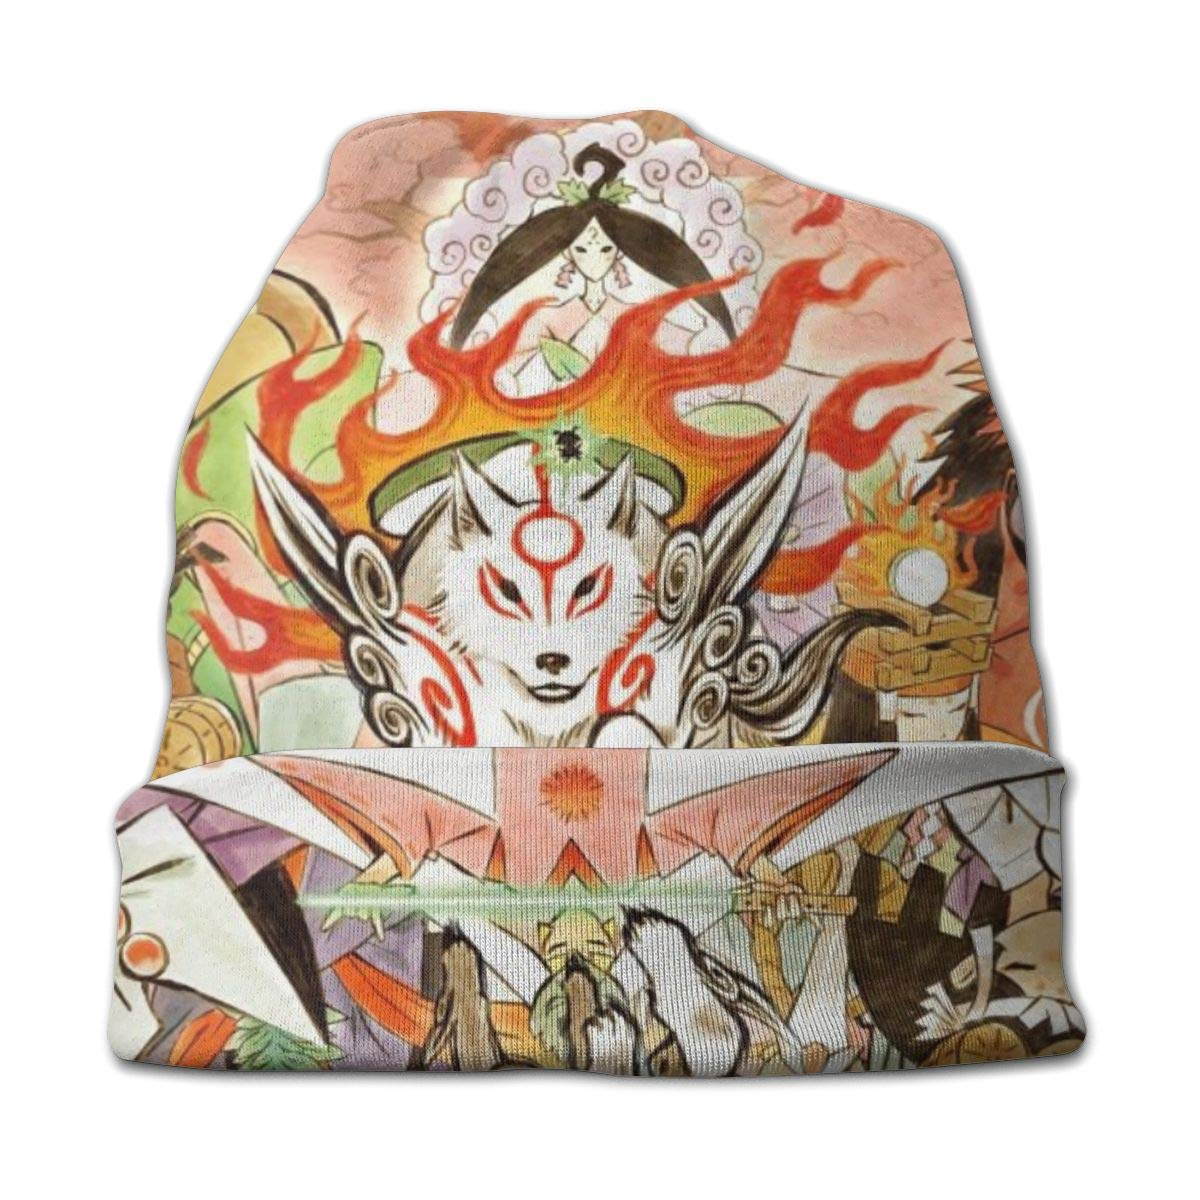 Okami Boys and Girls Anime Cartoon Beanie Hat Thin Beanie for Kids for Indoor Outdoor Festival Holiday Party and Thanksgiving Gifts Black